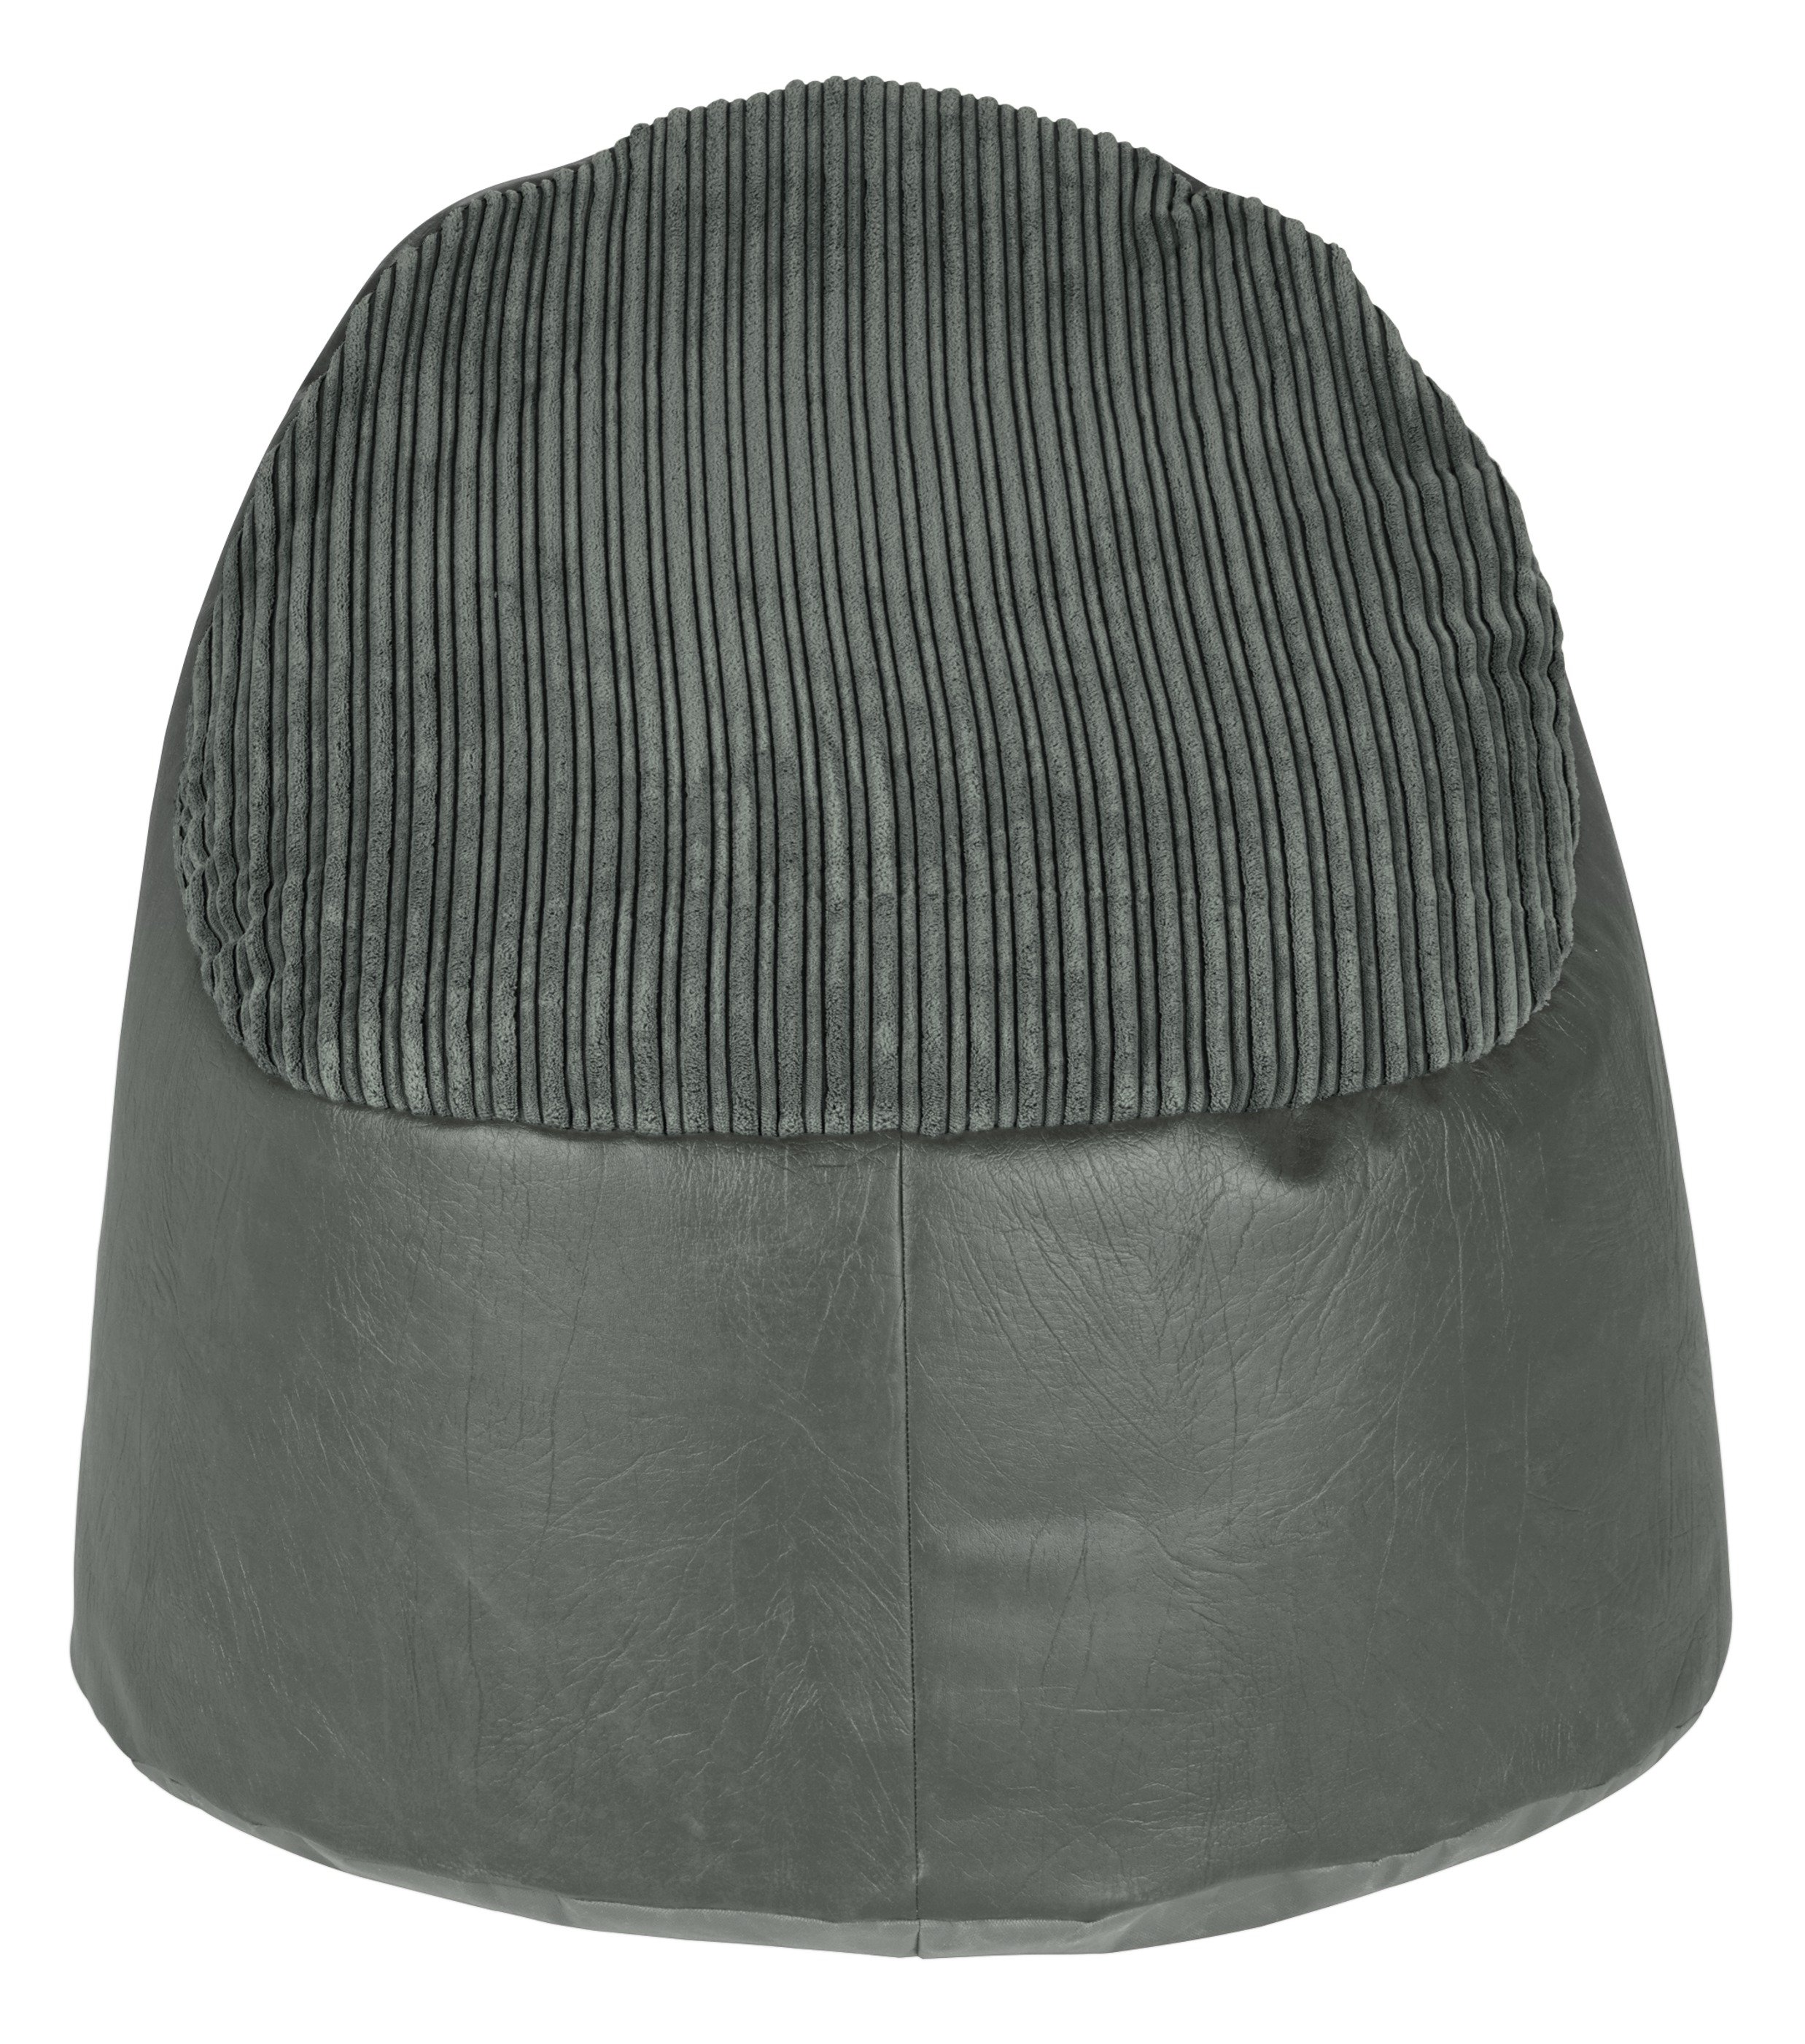 HOME Harley Fabric and Leather Effect Beanbag - Charcoal.